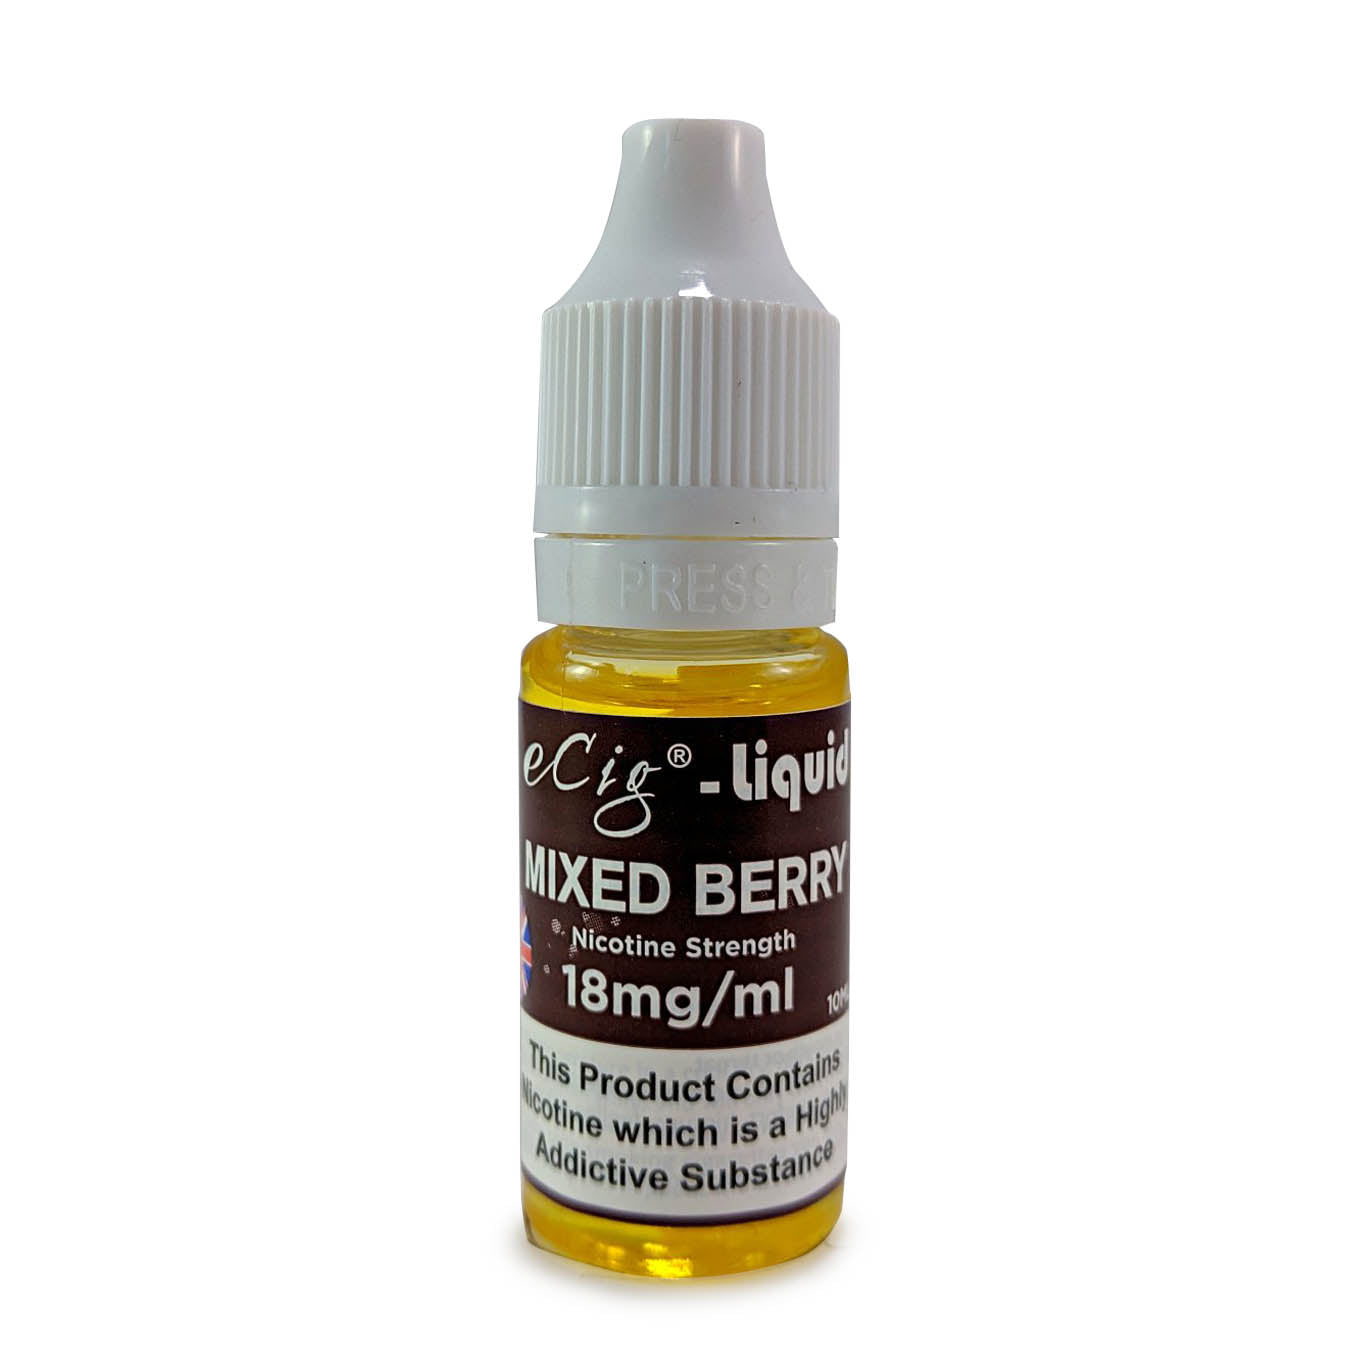 eCig-liquid Mixed Berry 18mg 10 Pack